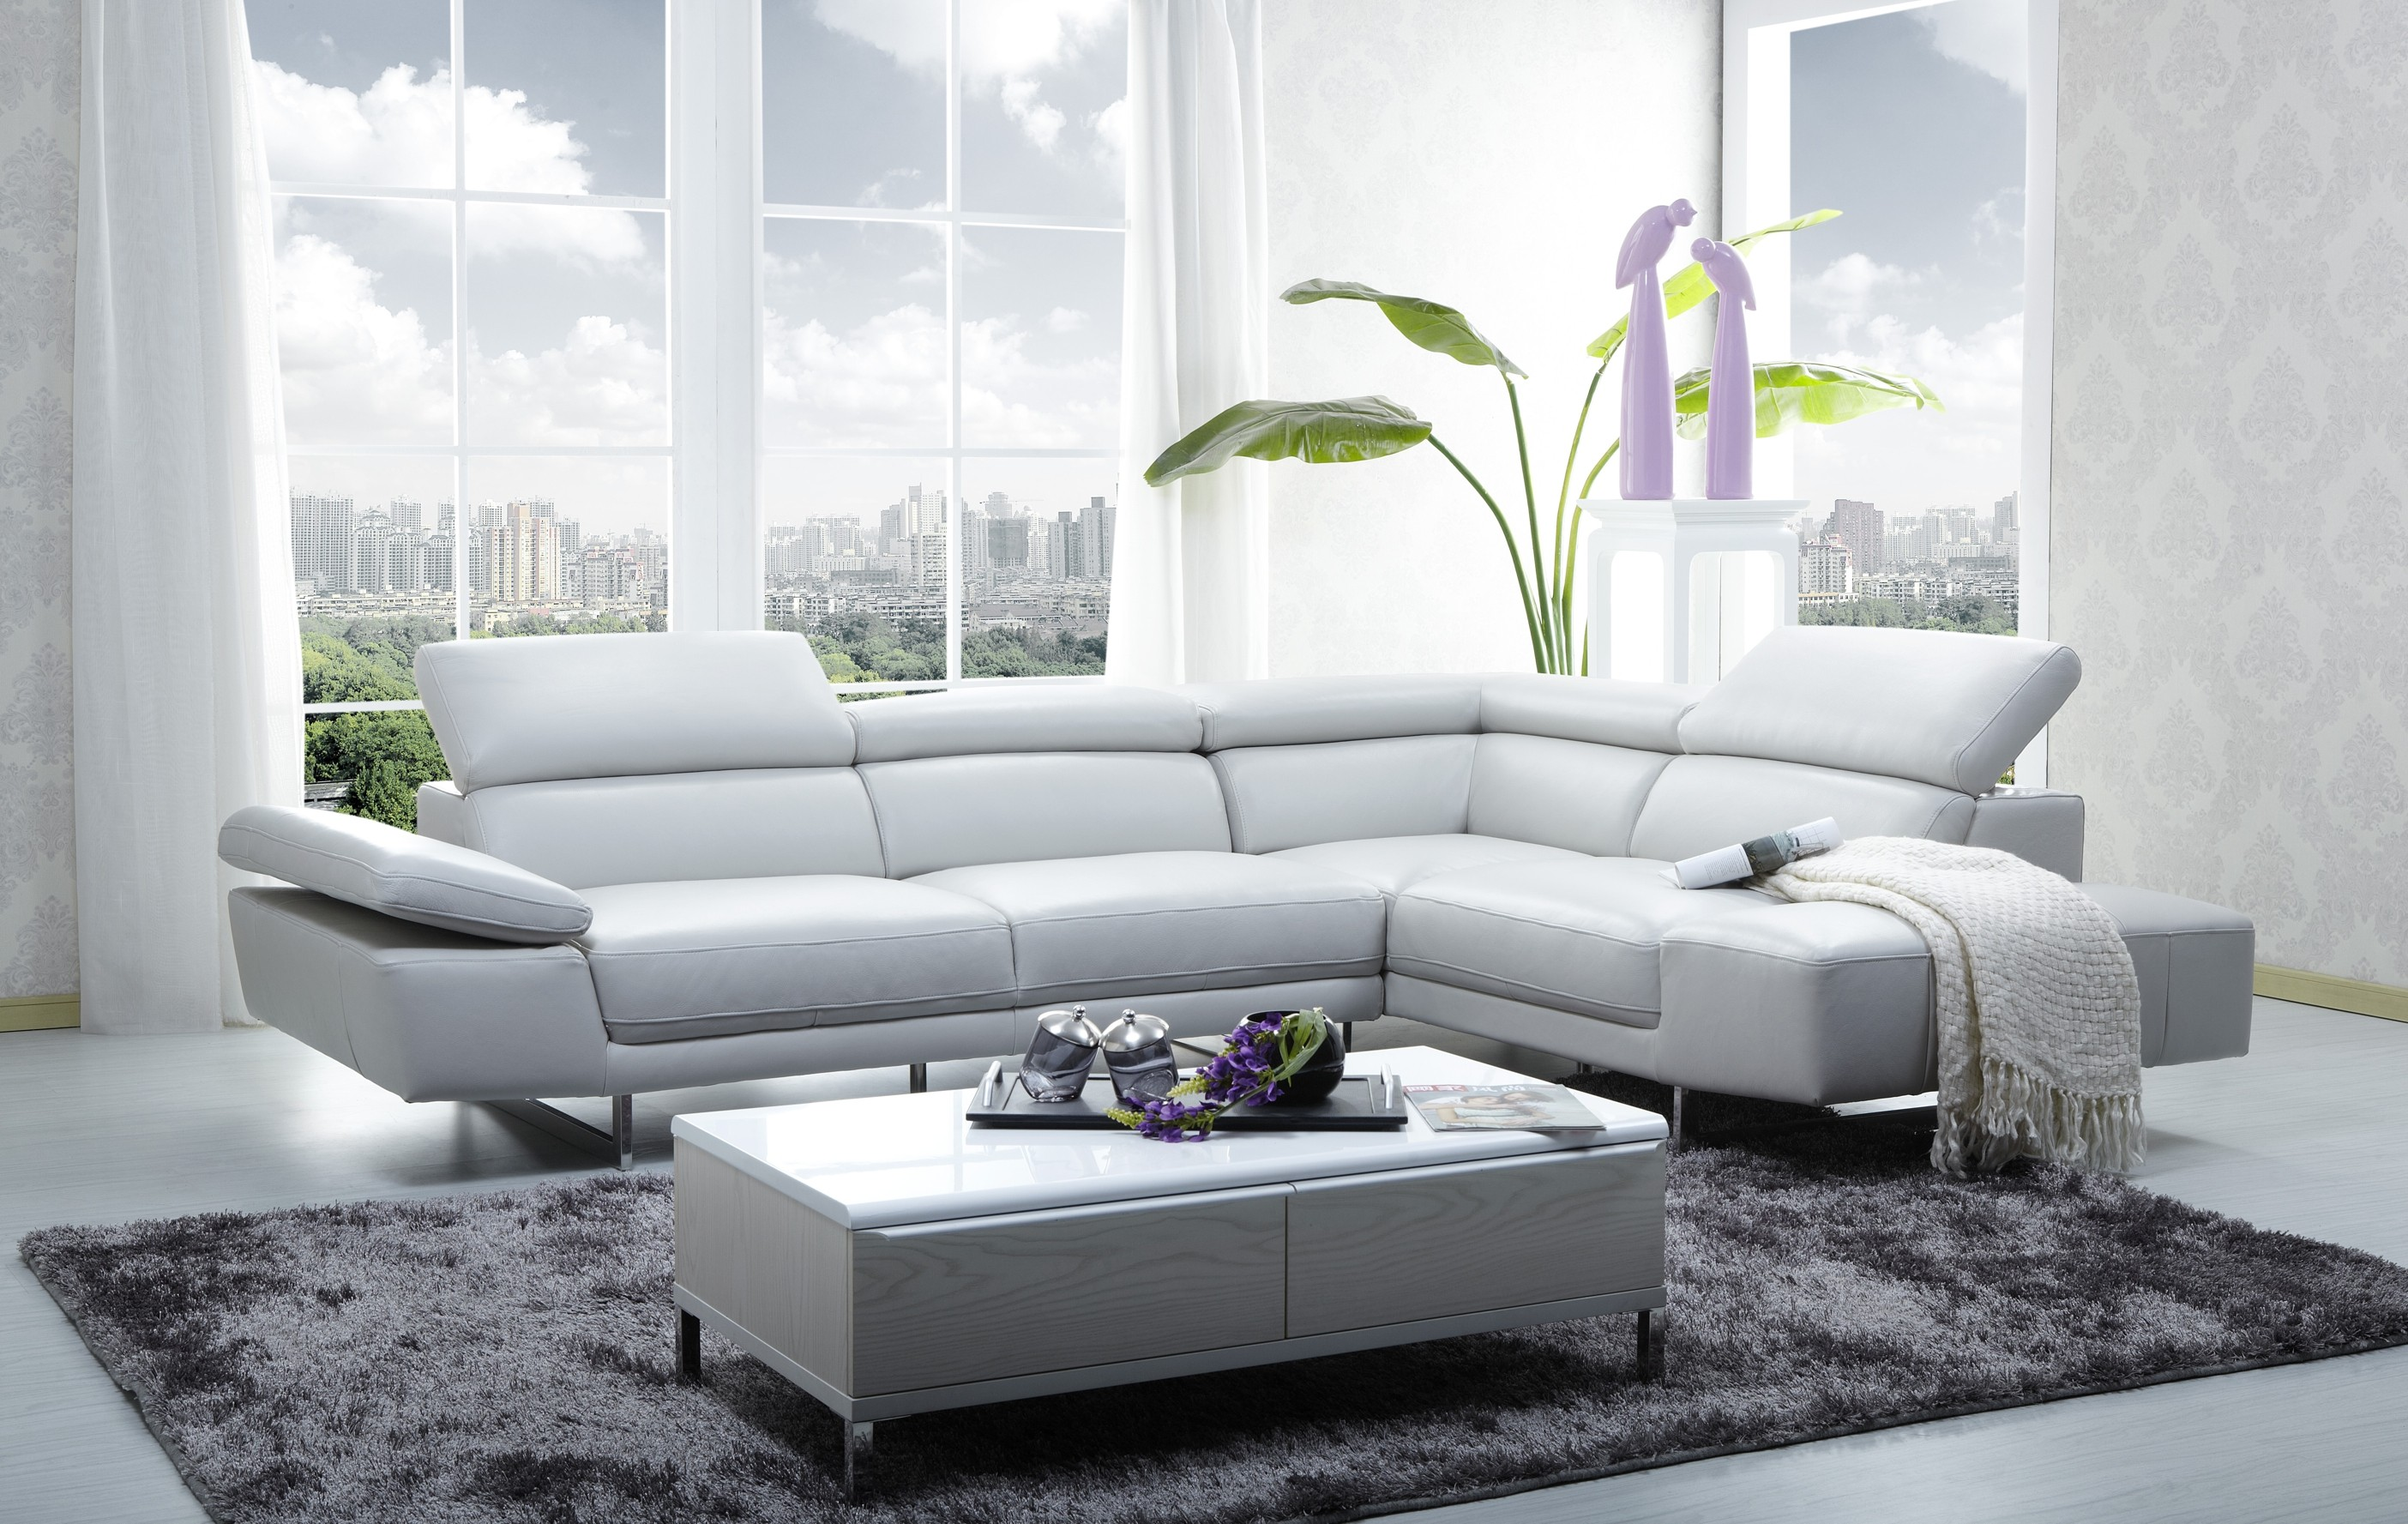 cado_modern_furniture_modern_sofas_modern_sectional_1717_white